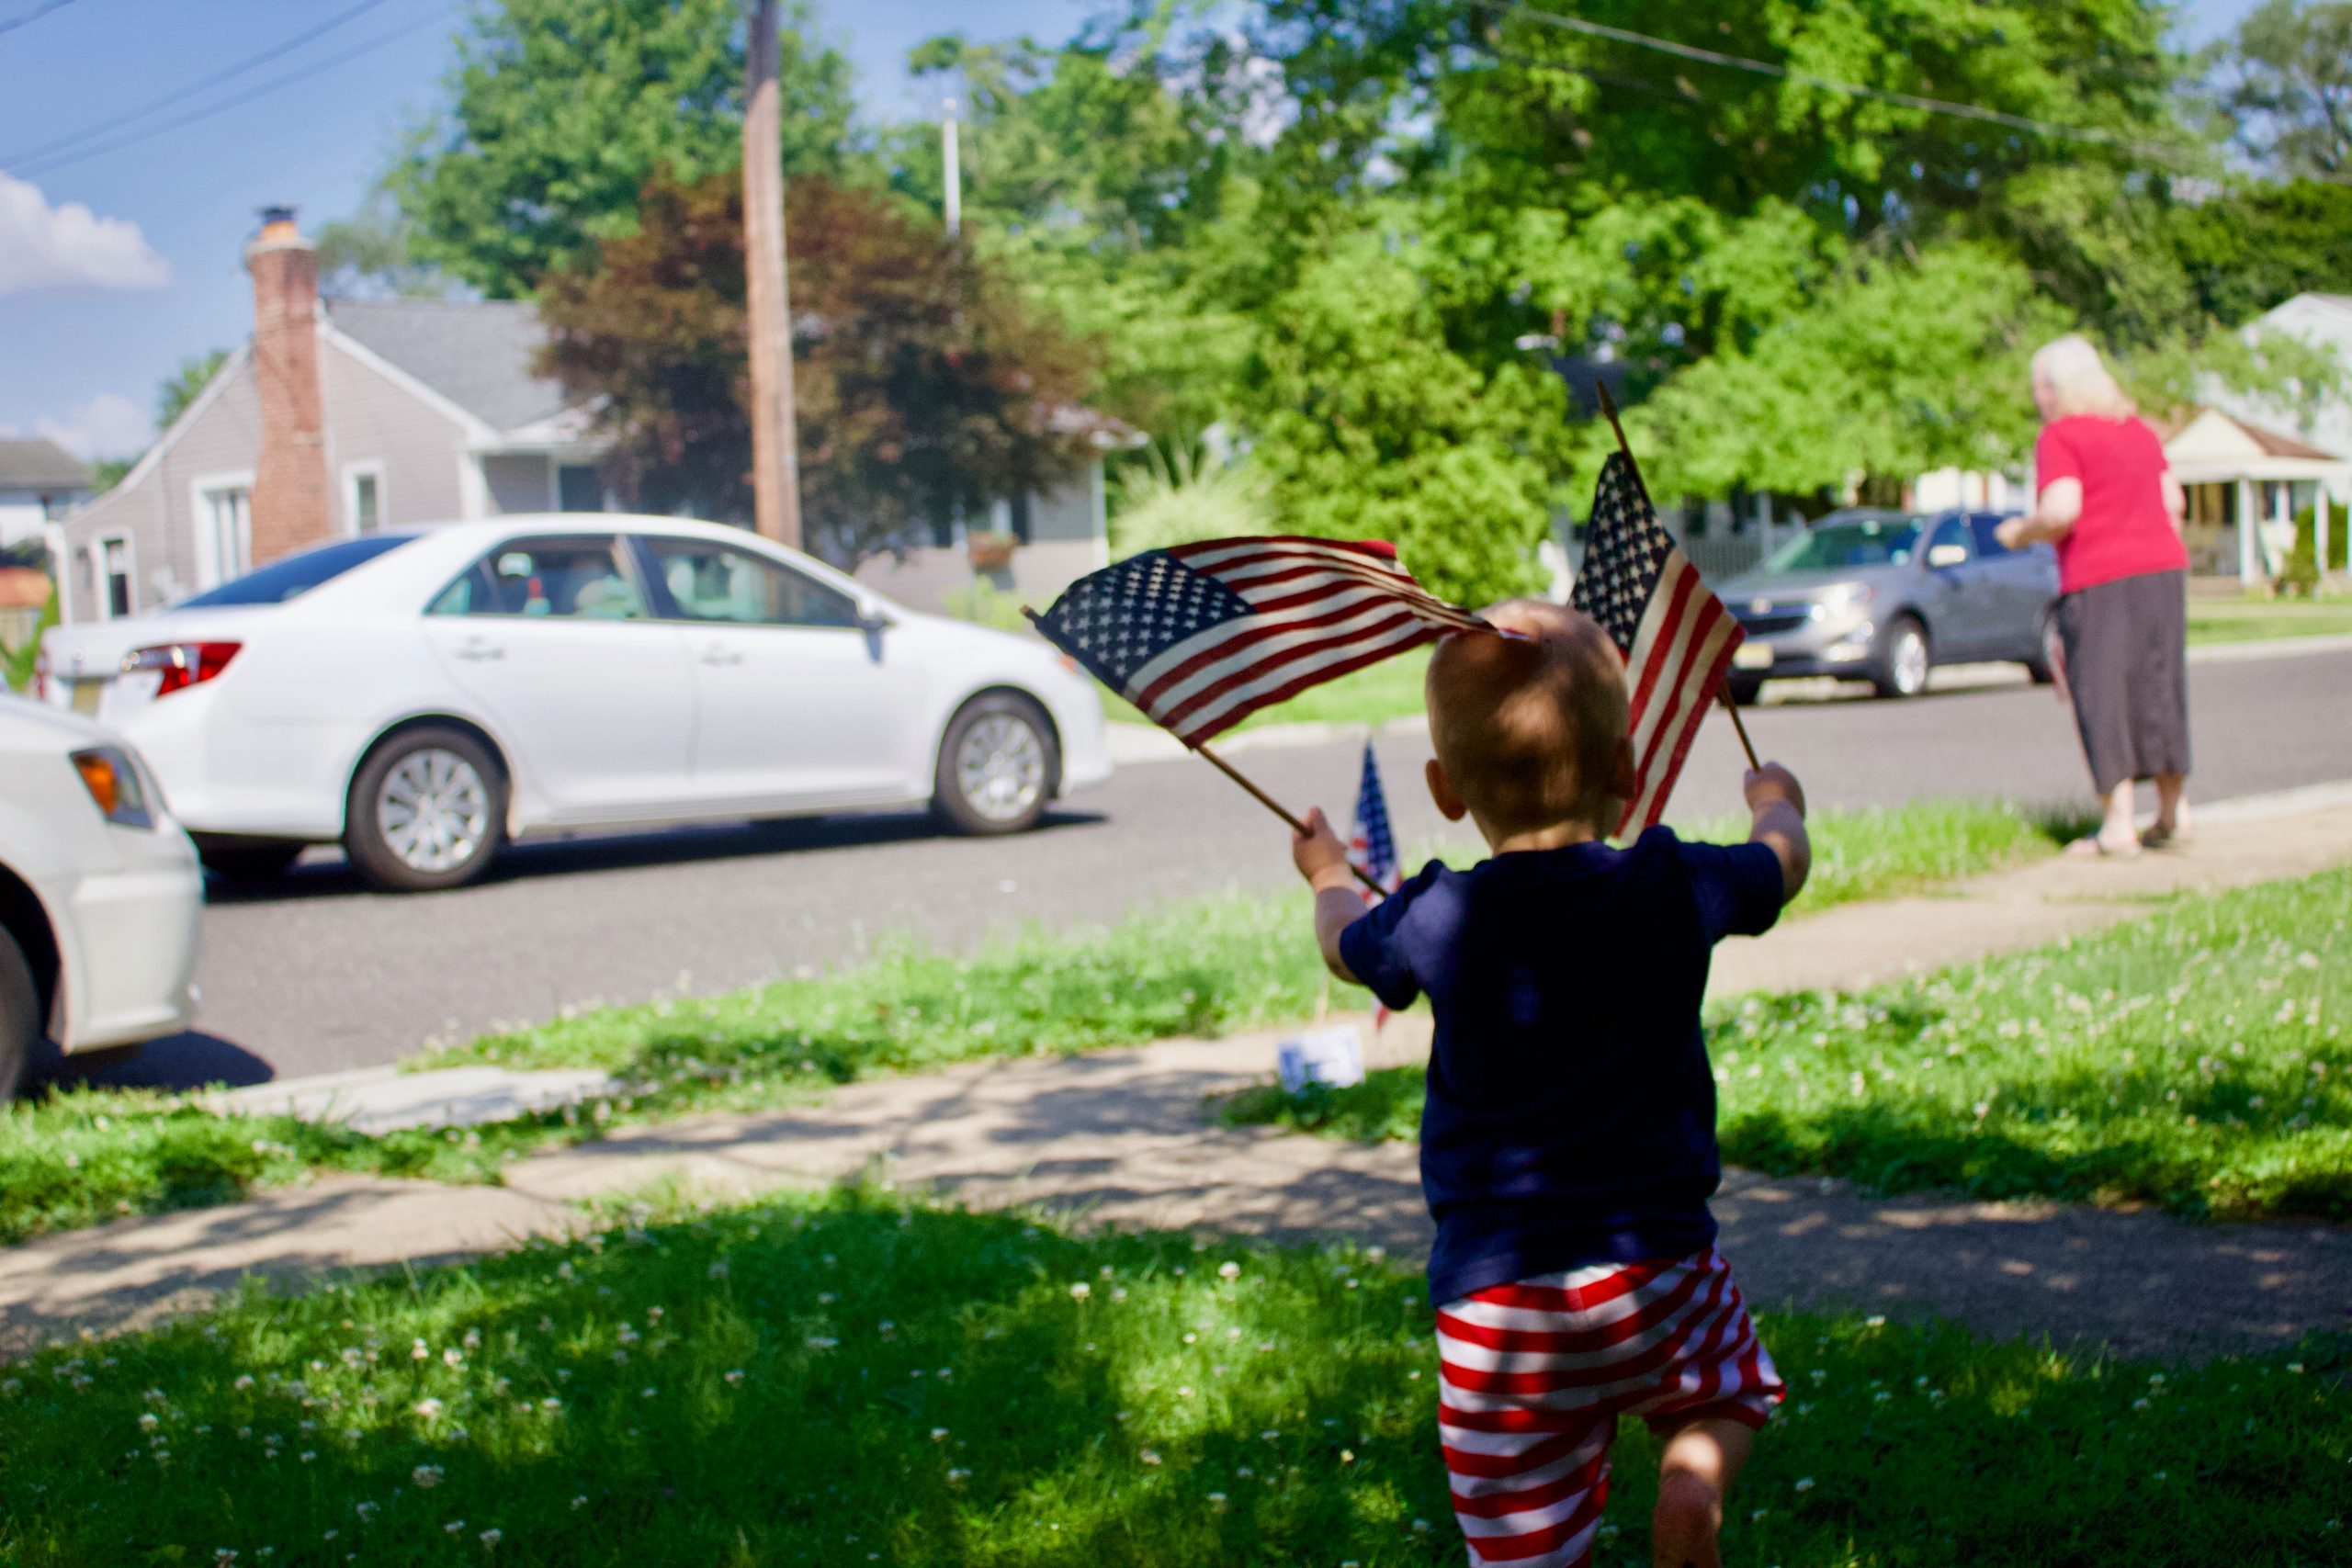 kid wearing american flag board shorts holding America flag during daytime